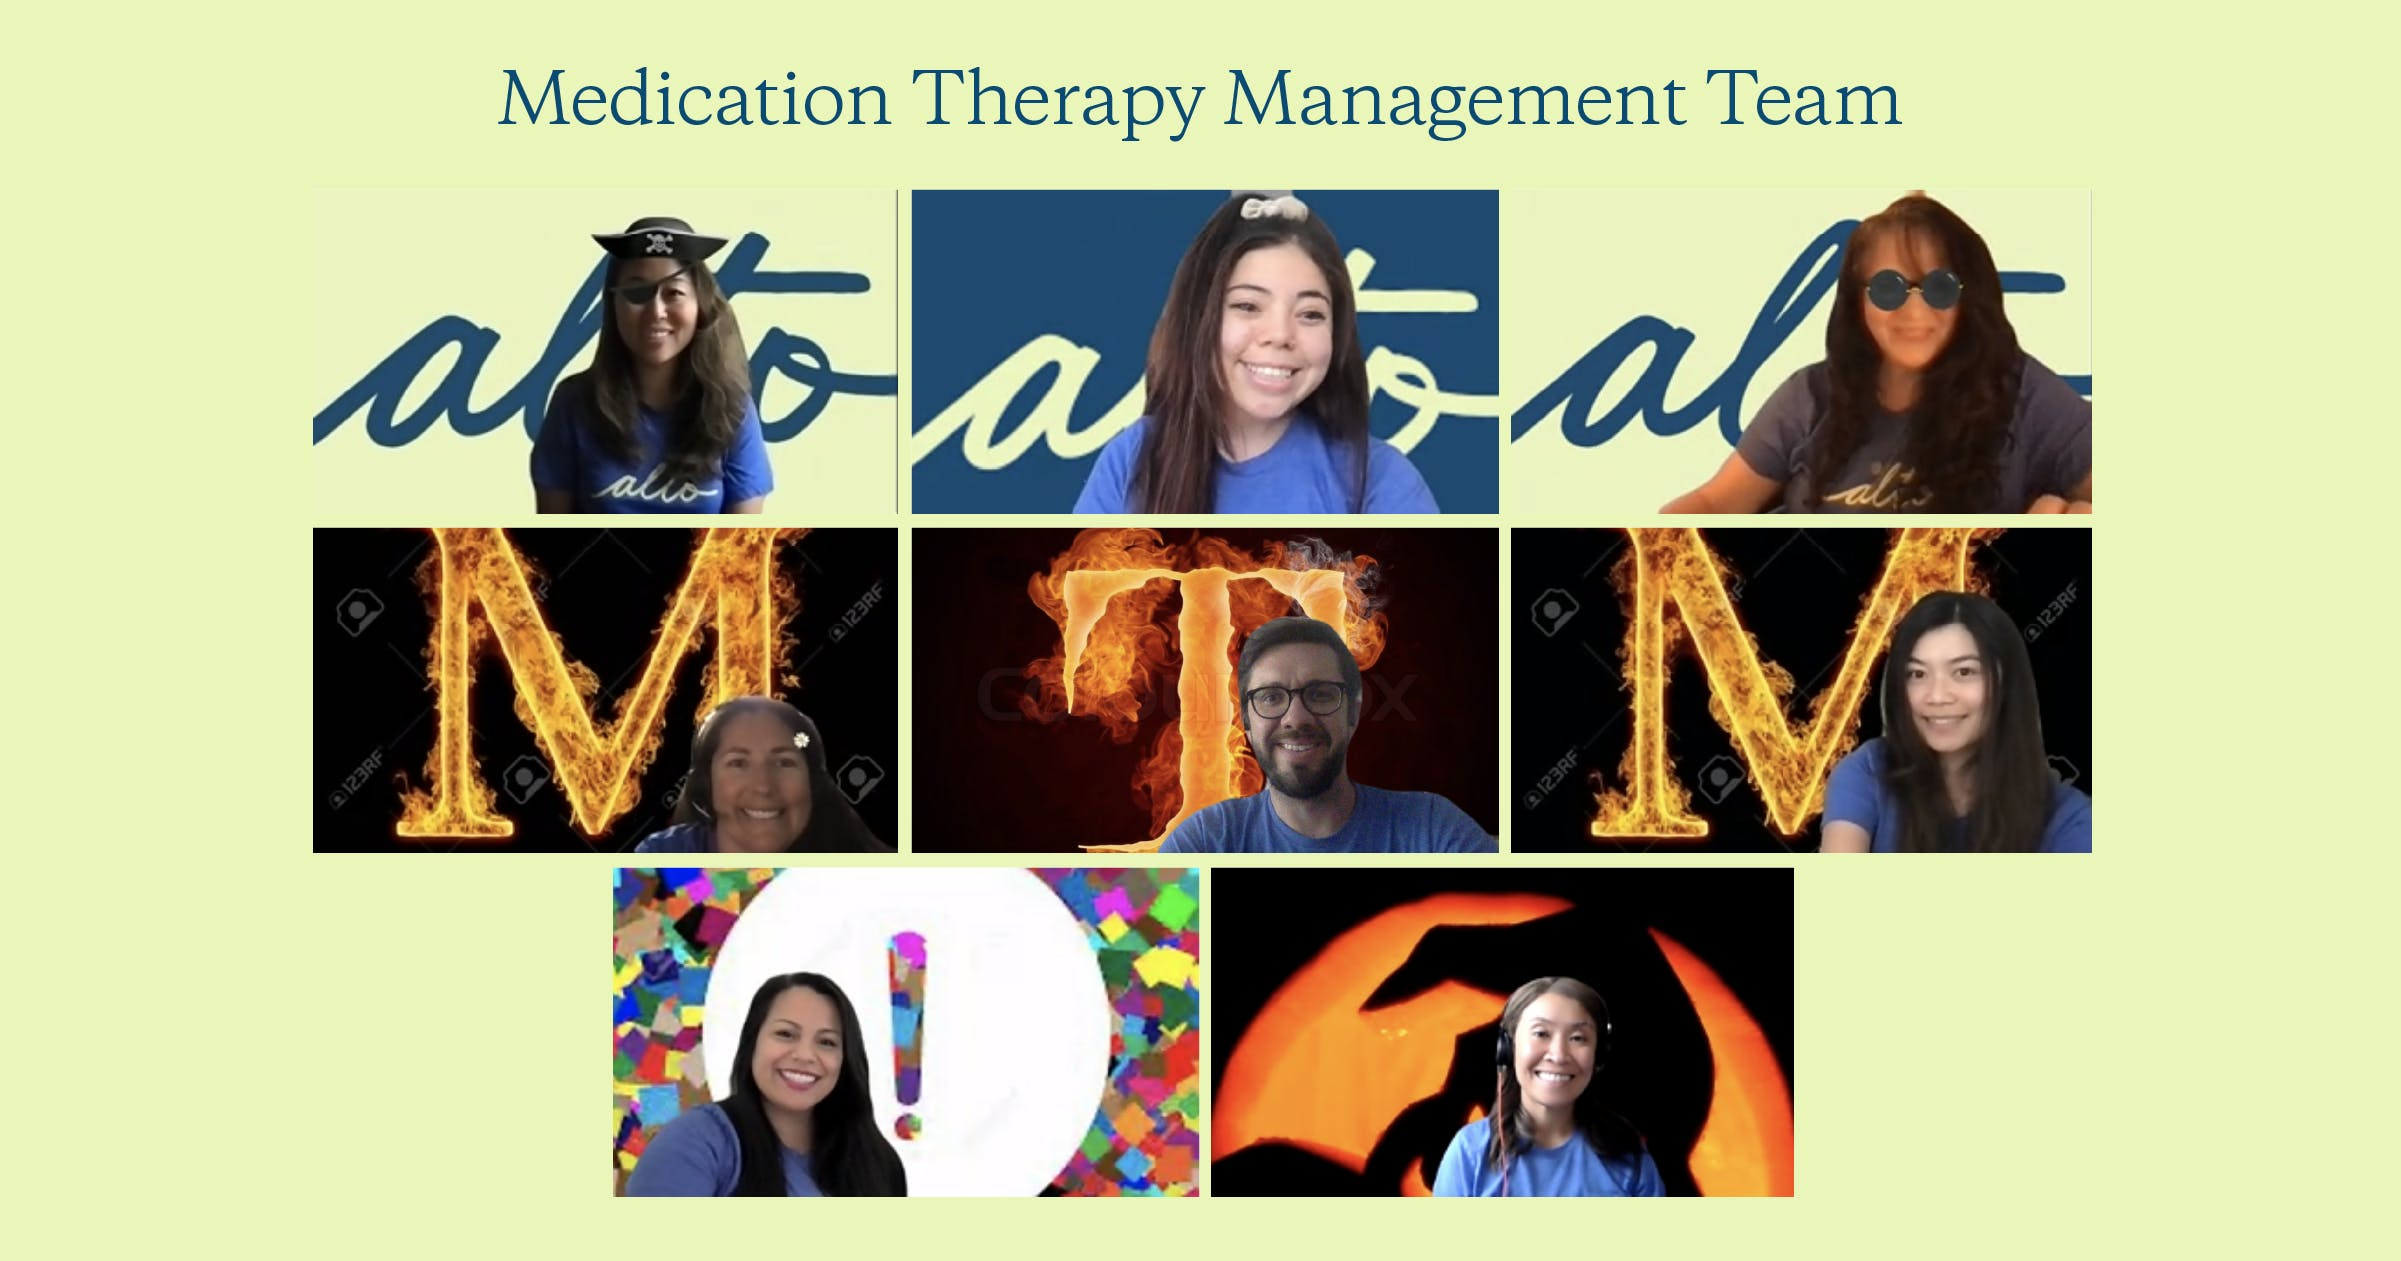 Medication Therapy Management Team